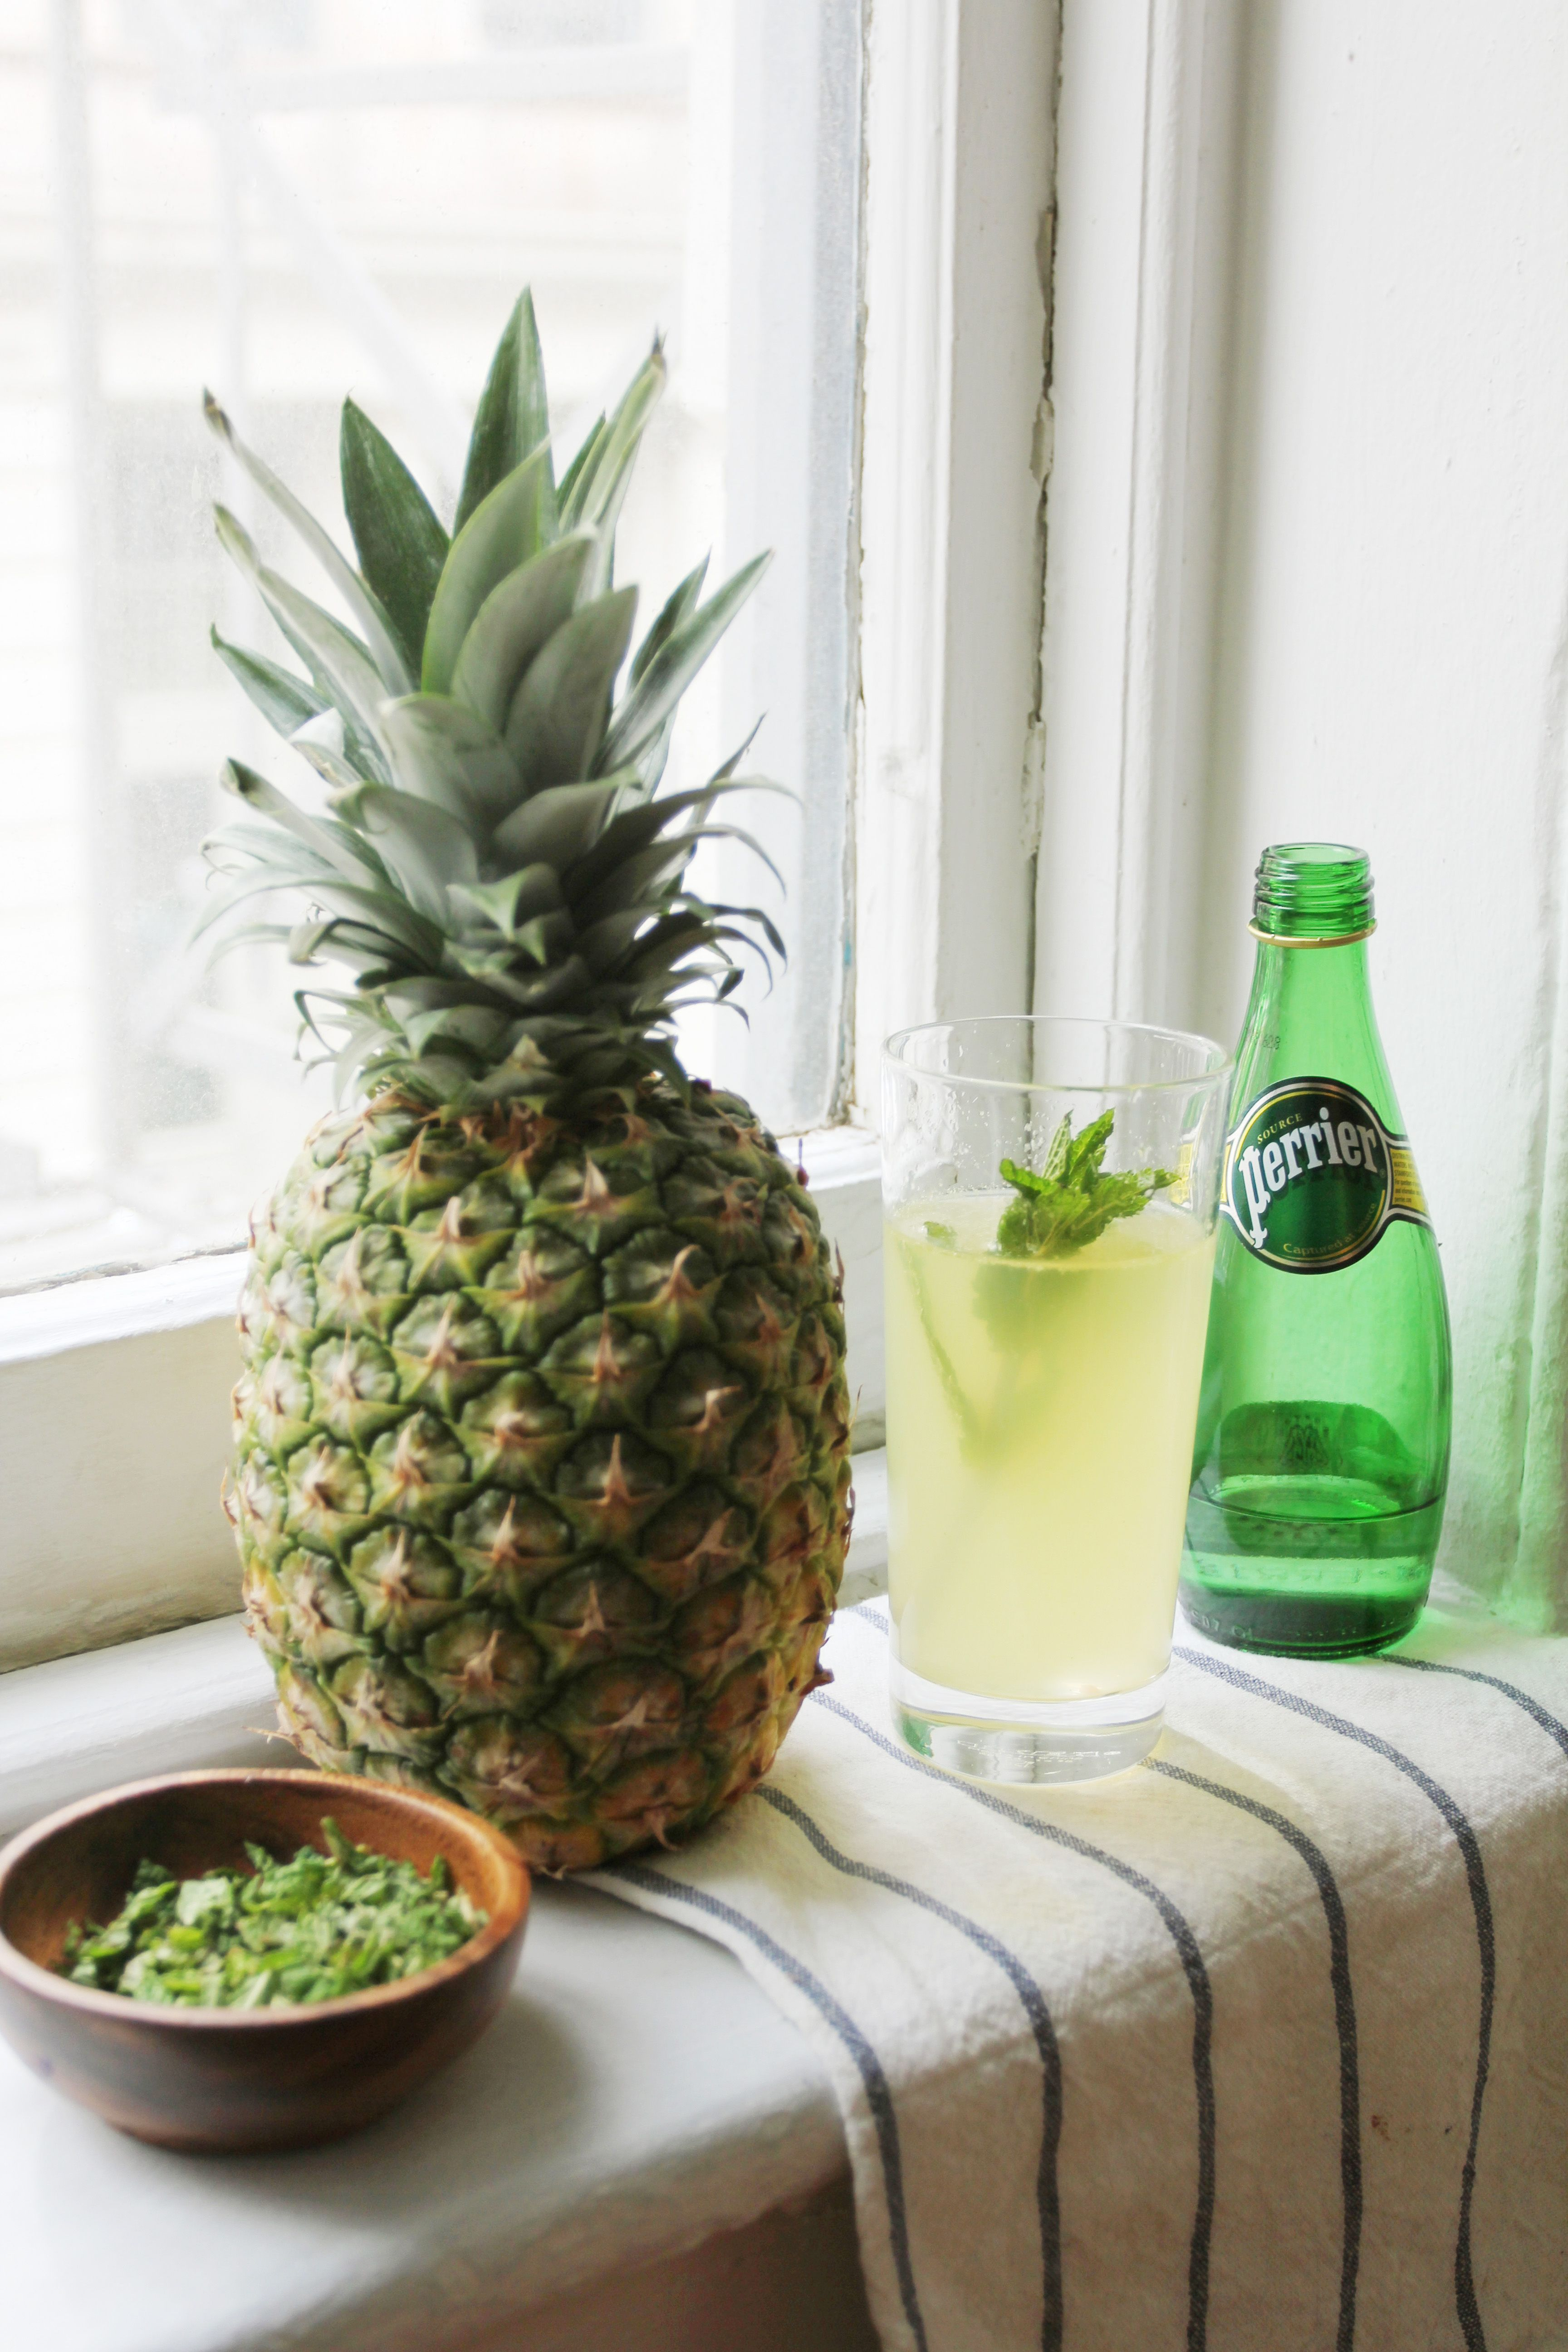 Perrier's iconic bubbles give fruit juices a kick. Try this pineapple mint mocktail, or add a dose of vodka, gin or rum to spice it up to cocktail level.   Ingredients: ½ of pineapple 2 cups Perrier ¼ cup fresh mint leaves  Directions: 1. Puree ½ pineapple in a blender or food processor. 2. Chop up fresh mint leaves 3. Mix together the pineapple & mint leave 4. Add 2 cup of CHILLED Perrier to the mixture 5. Stir and refrigerate if you'd like. 6. Enjoy!